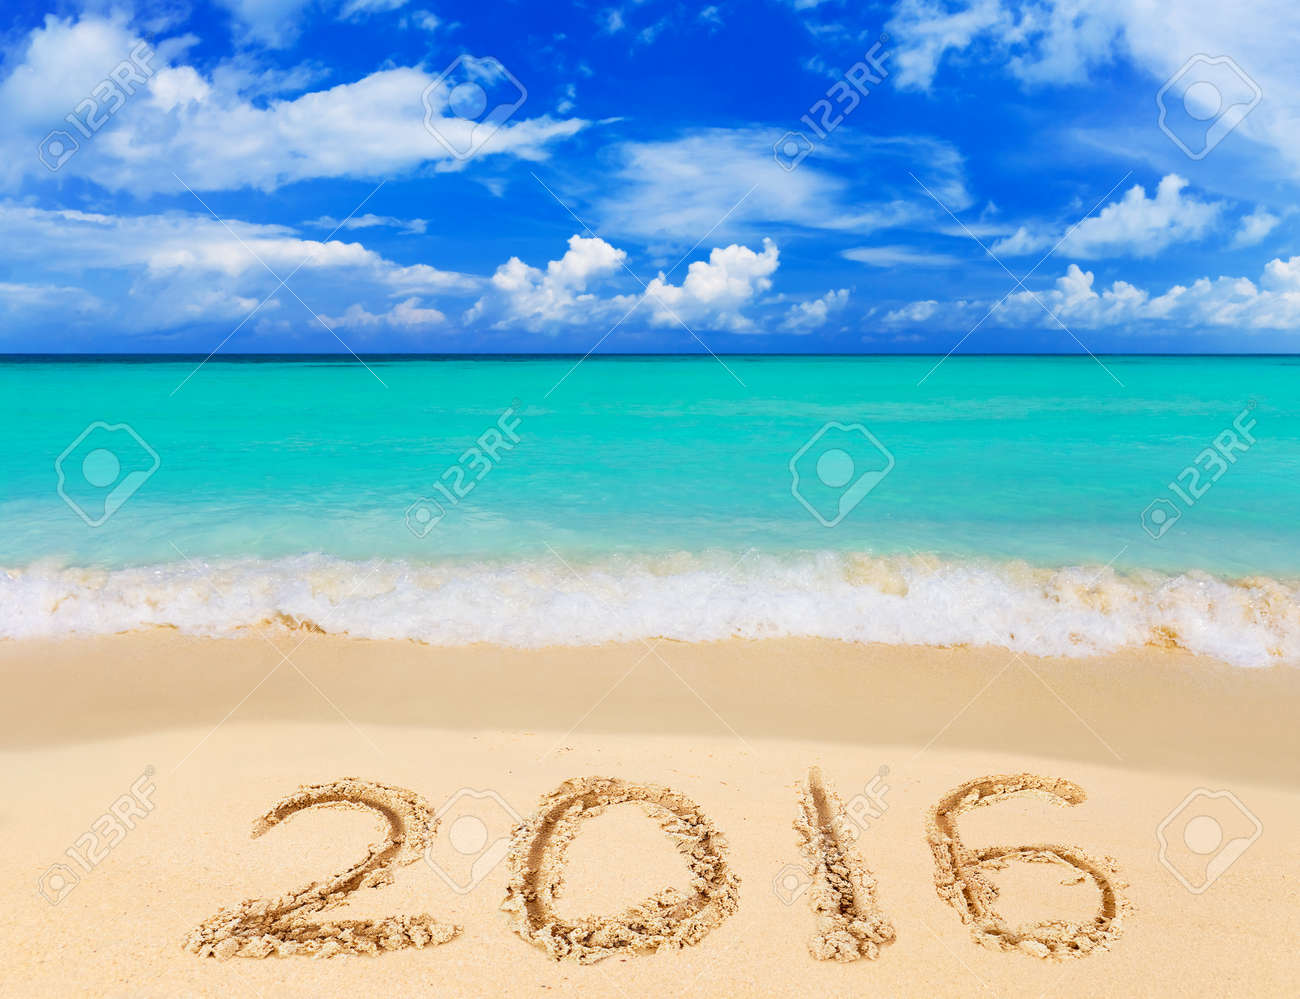 Numbers 2016 on beach - concept holiday background - 48008141